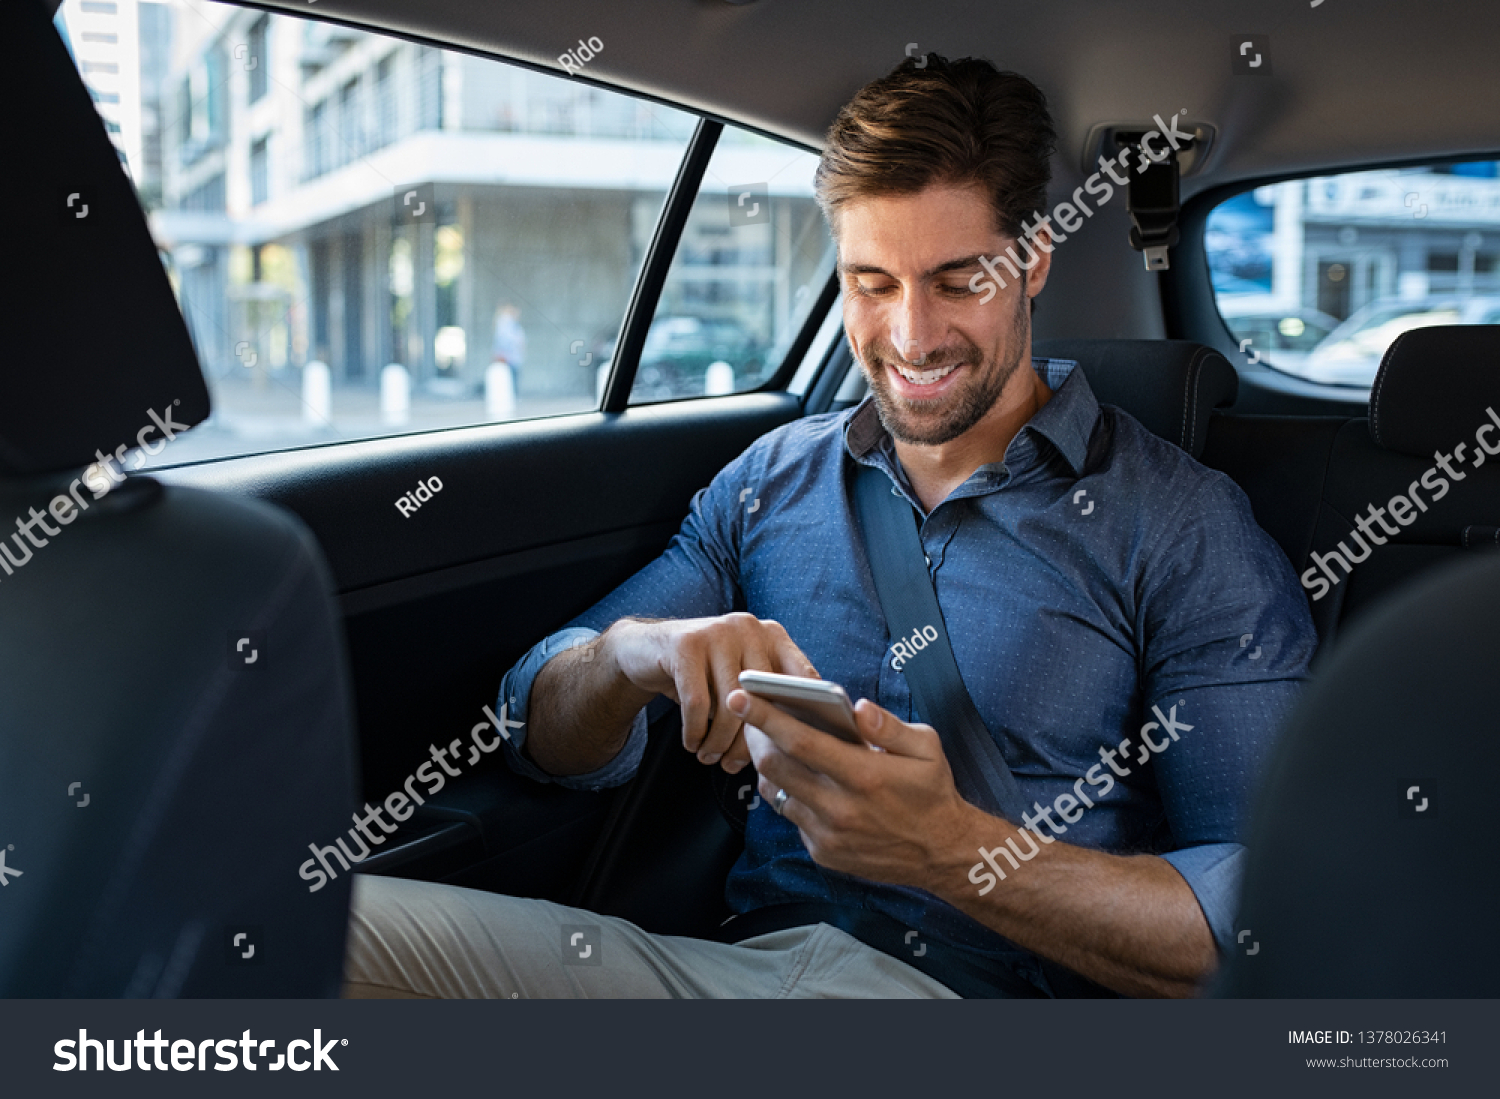 Happy smiling business man typing message on phone while sitting in a taxi. Young businessman in formal clothing using smartphone while sitting on back seat in car. Cheerful guy messaging with cell. #1378026341